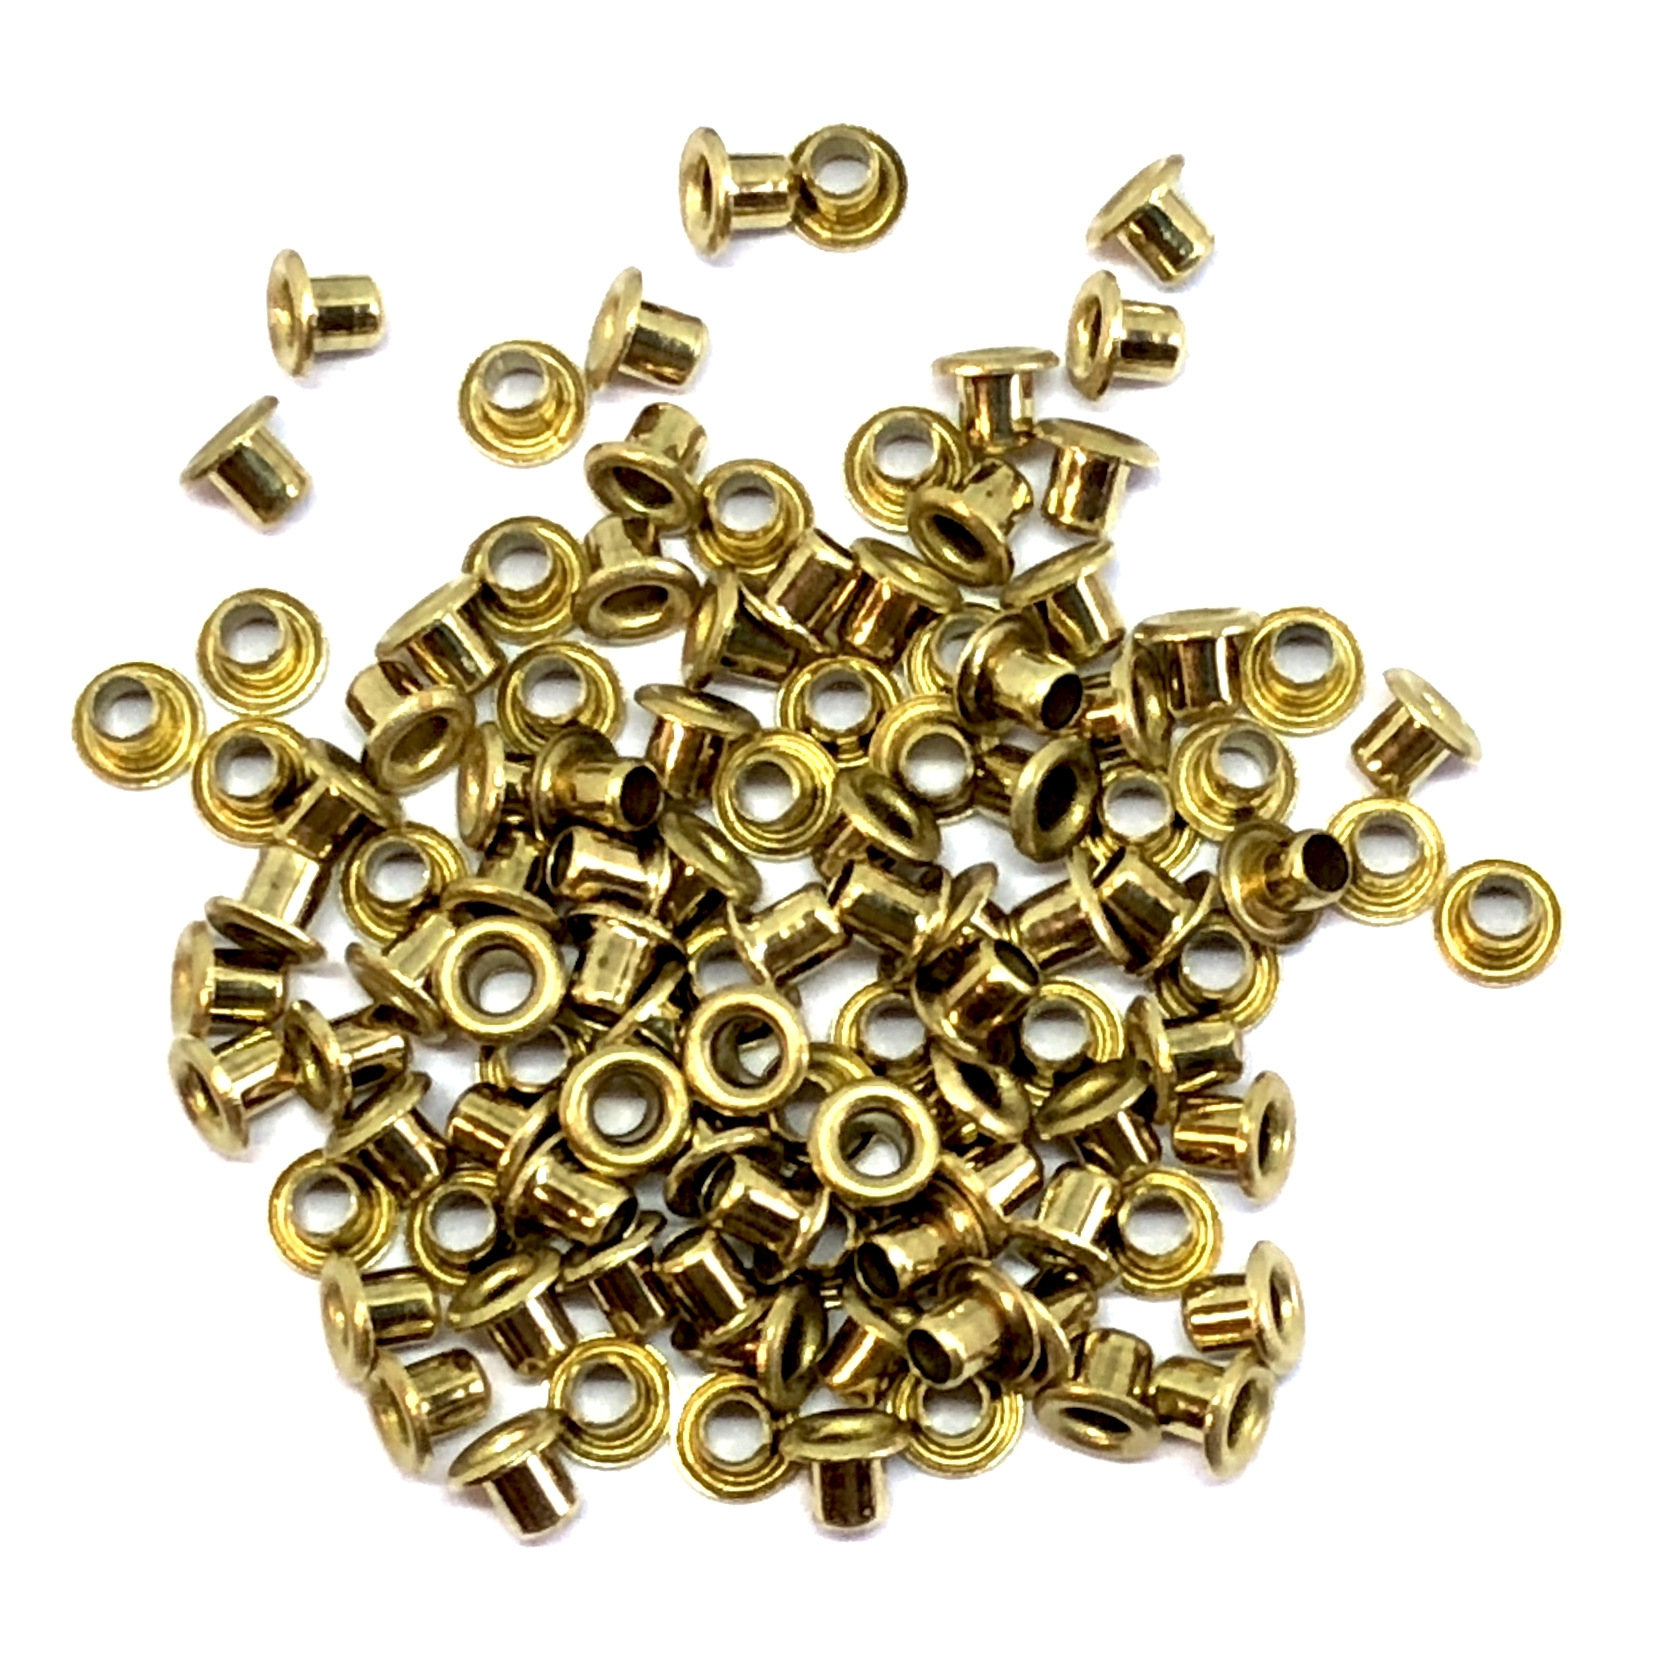 eyelet rivets, 3/32 rivets, brass rivets, 08503, 3/32 diameter eyelets, 3/32 length rivets, jewelry making supplies, vintage jewelry supplies, jewelry findings, brass jewelry parts, bsueboutiques, raw brass